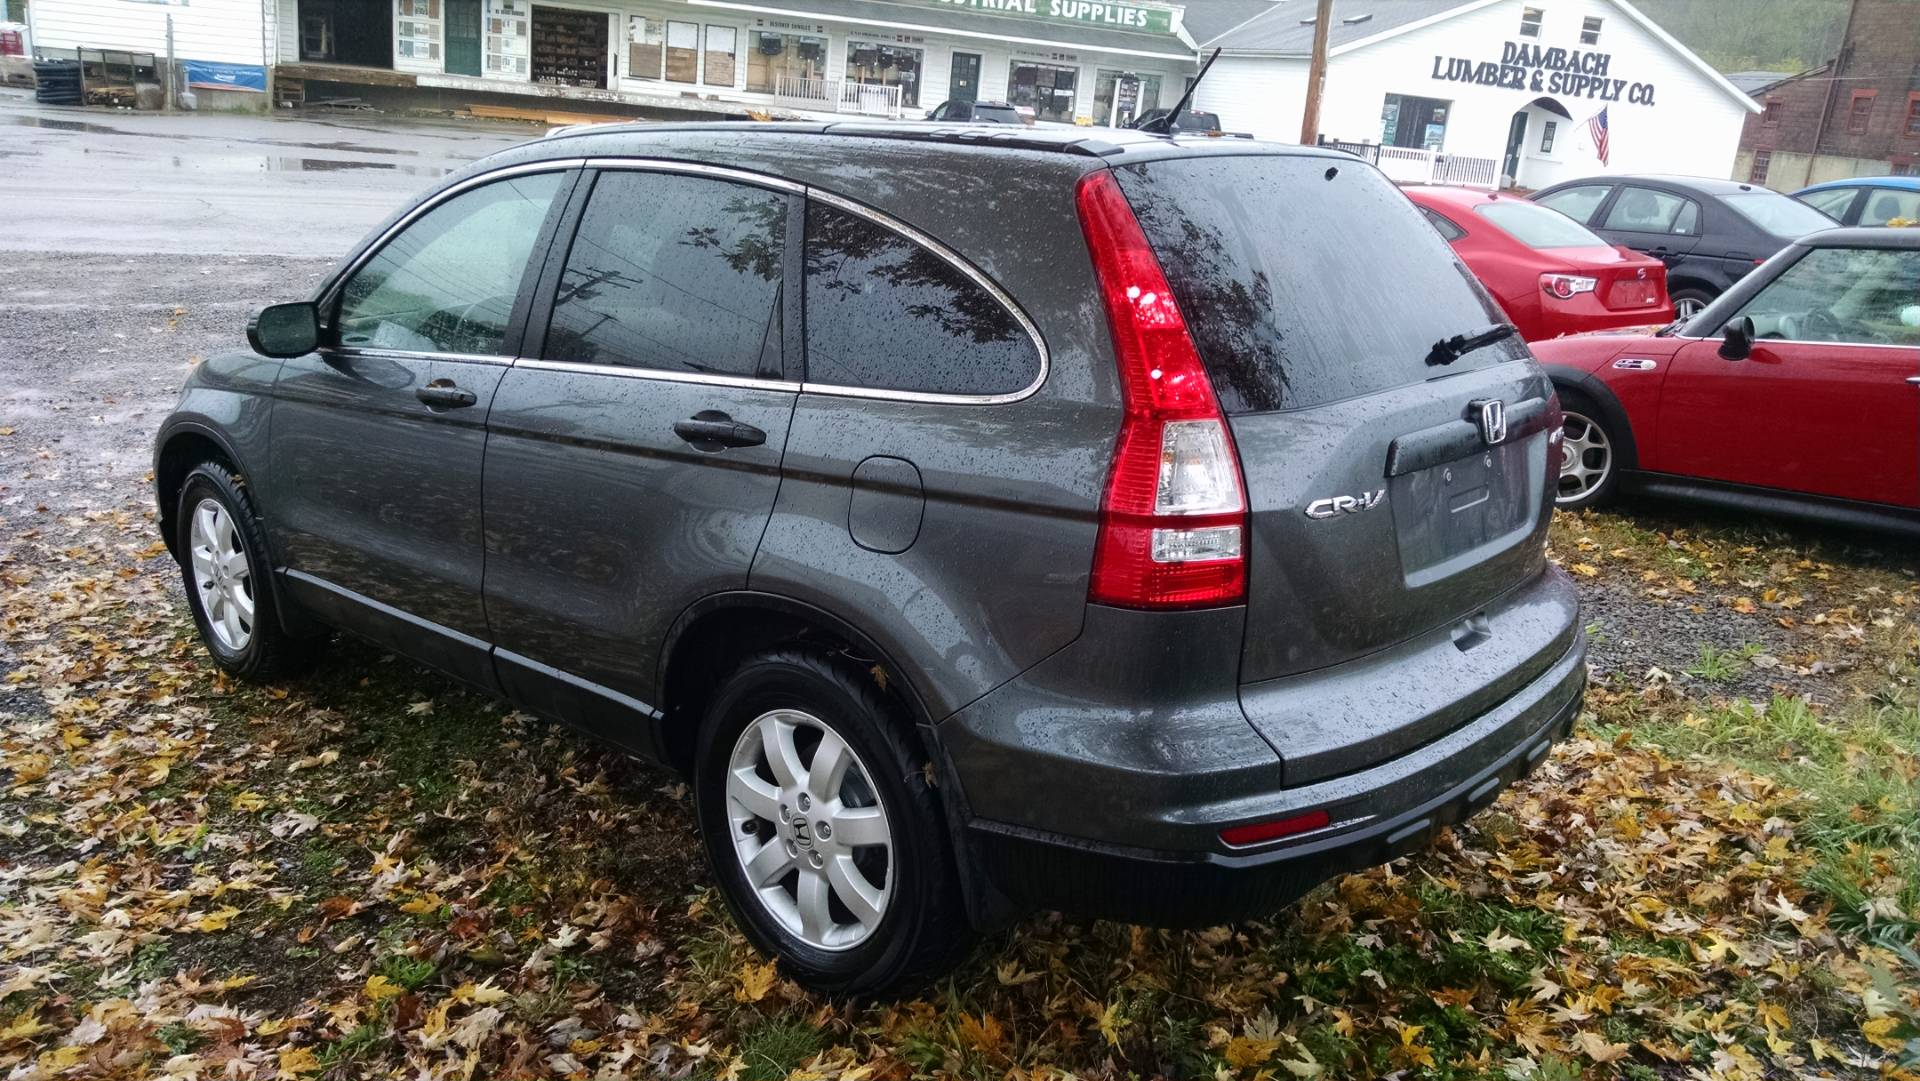 2011 Honda CRV in Harmony, Pennsylvania - Photo 5